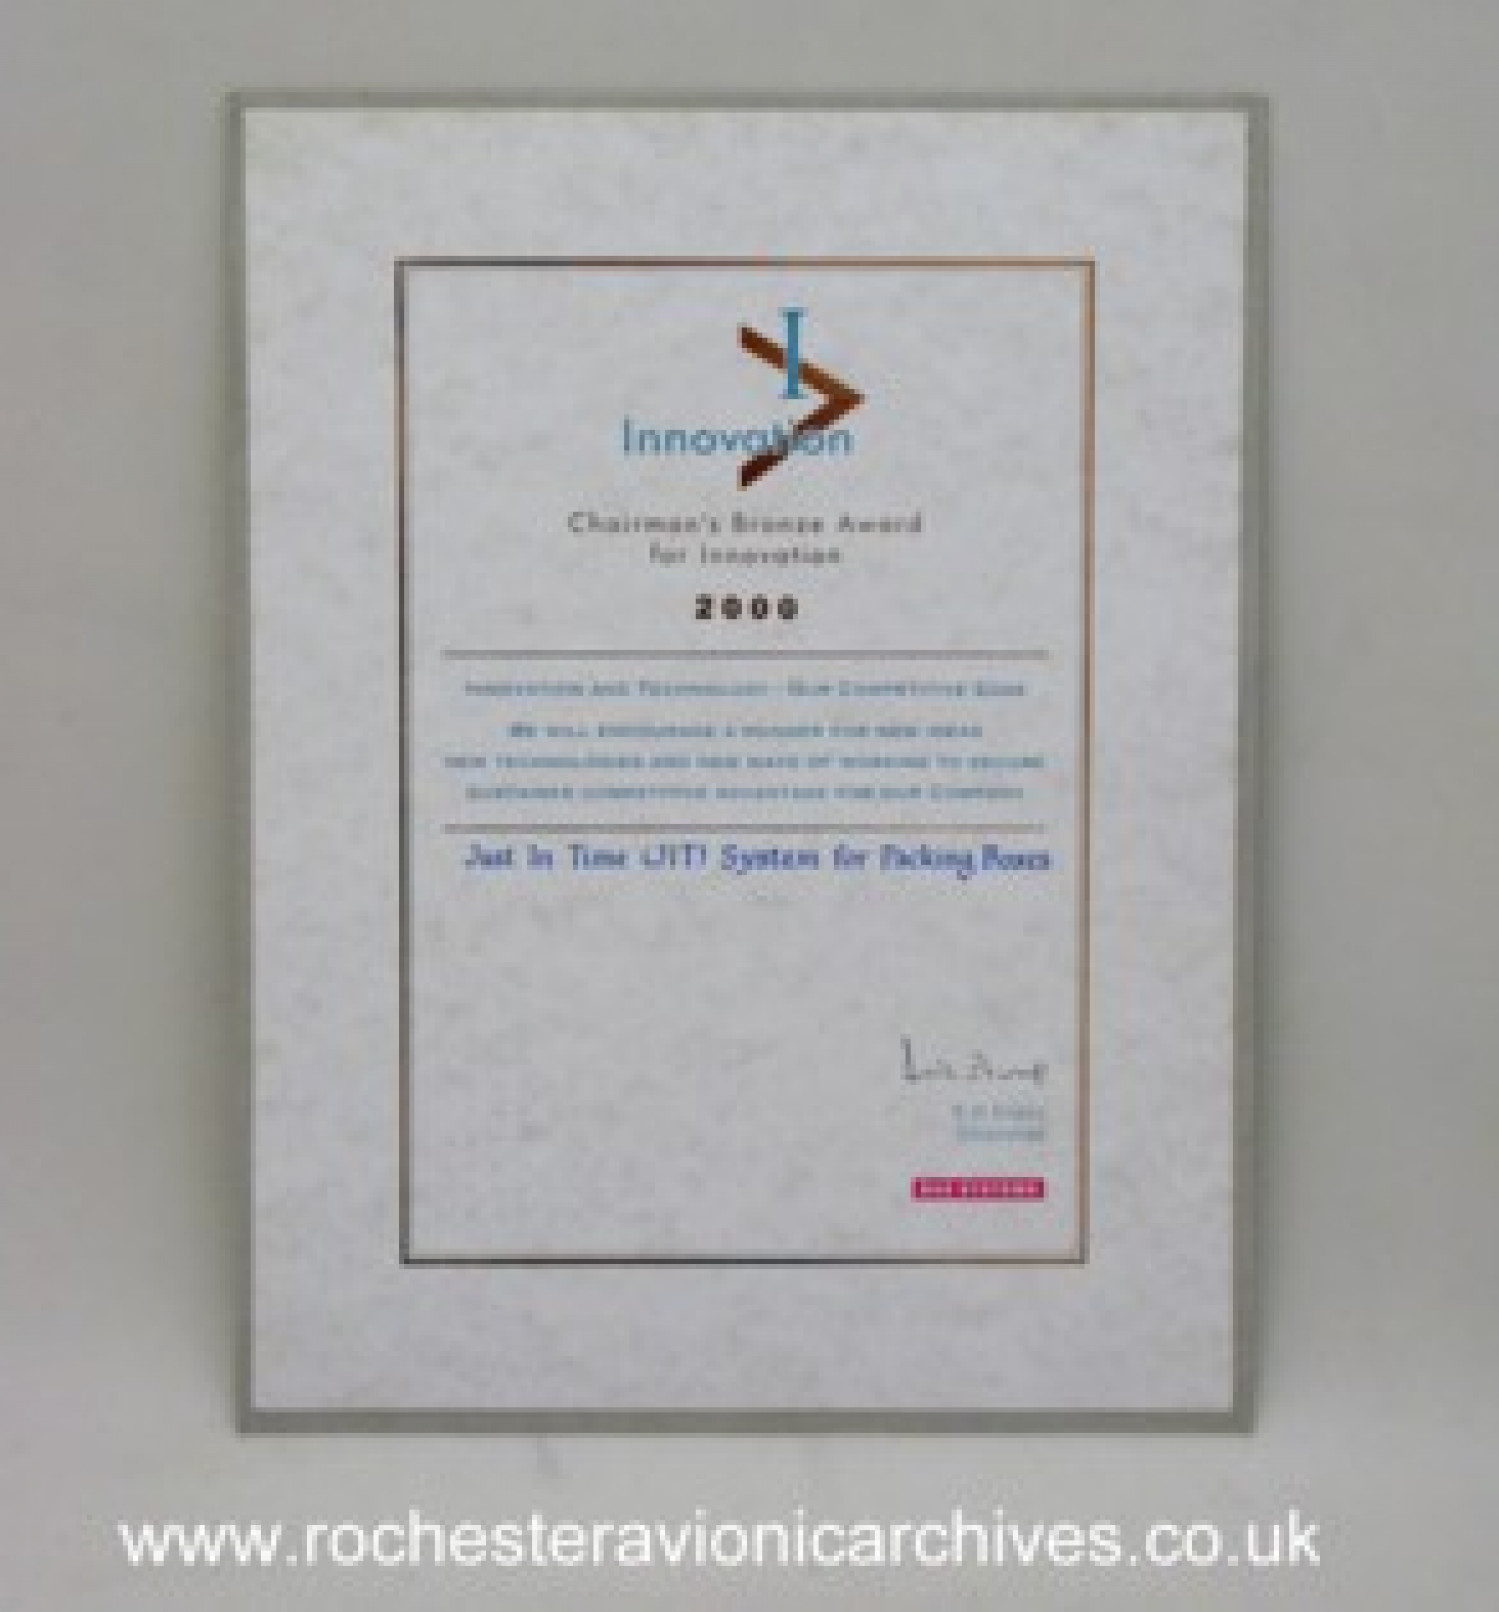 Chairman's Bronze Award for Innovation 2000